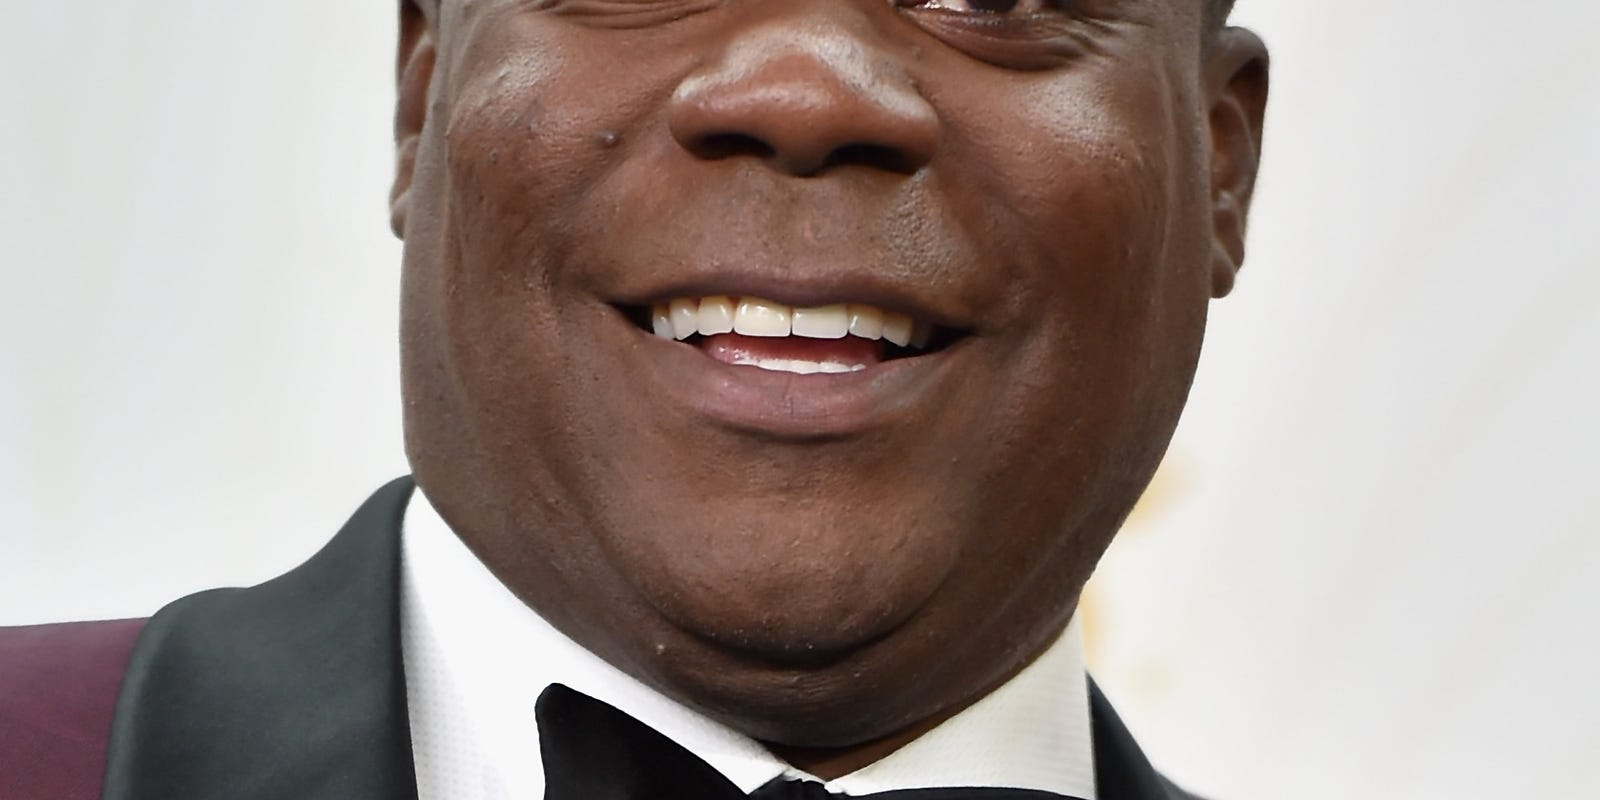 0dd5a25ccbb McFly Report: Tracy Morgan coming to DC